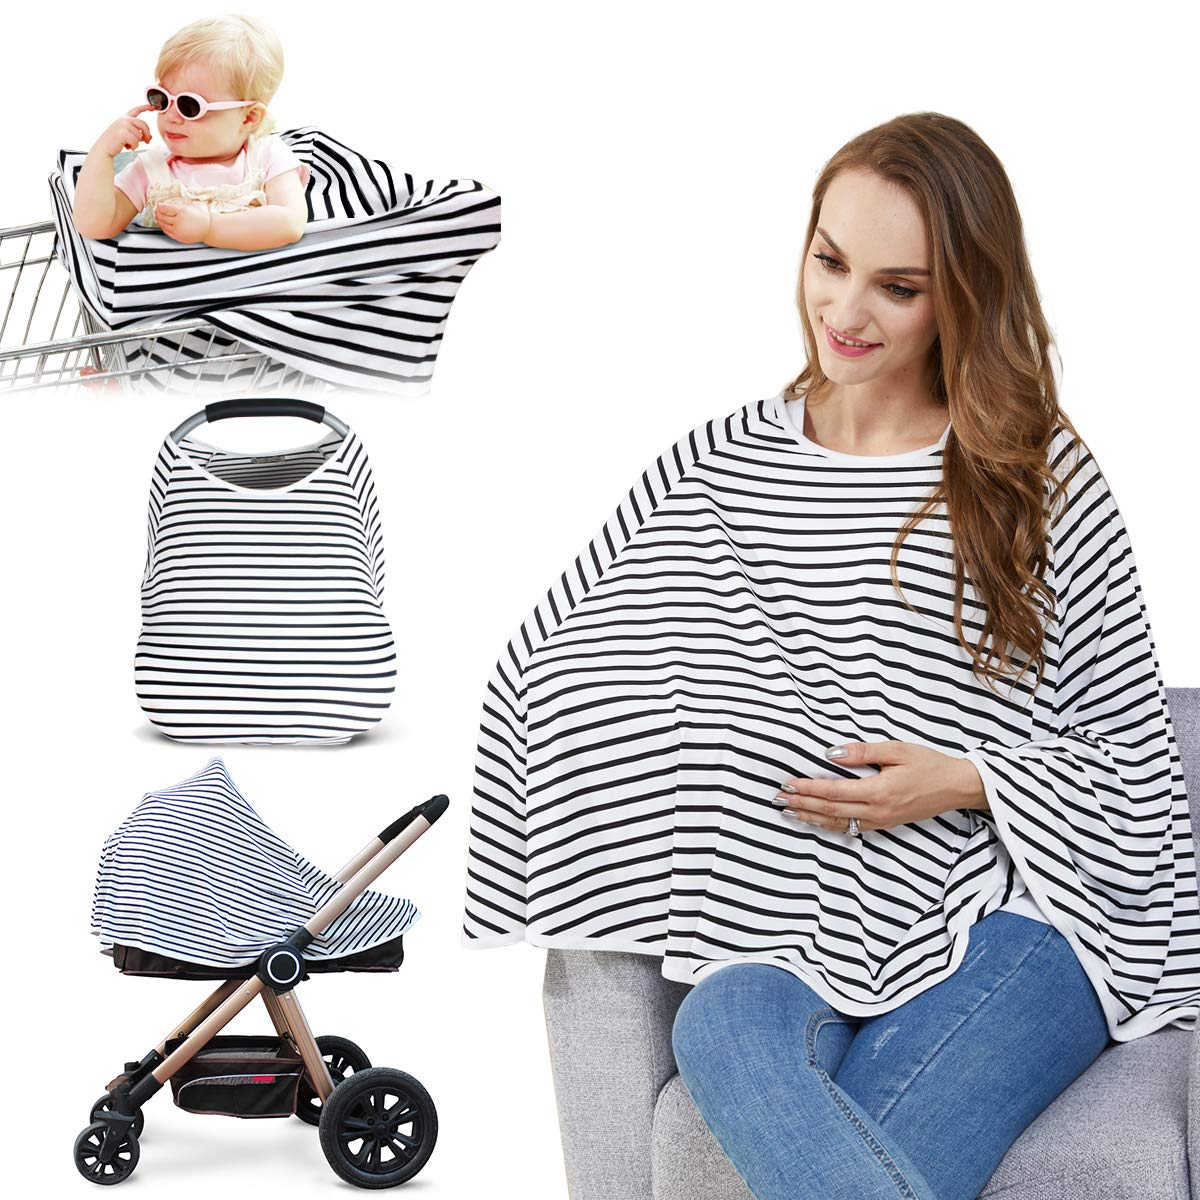 Baby Nursing Cover & Nursing Poncho - Multi Use Cover for Baby Car Seat Canopy, Shopping Cart Cover, Stroller Cover, 360° Full Privacy Breastfeeding Protection, Baby Shower Gifts for Boy&Girl by Kefee Kol